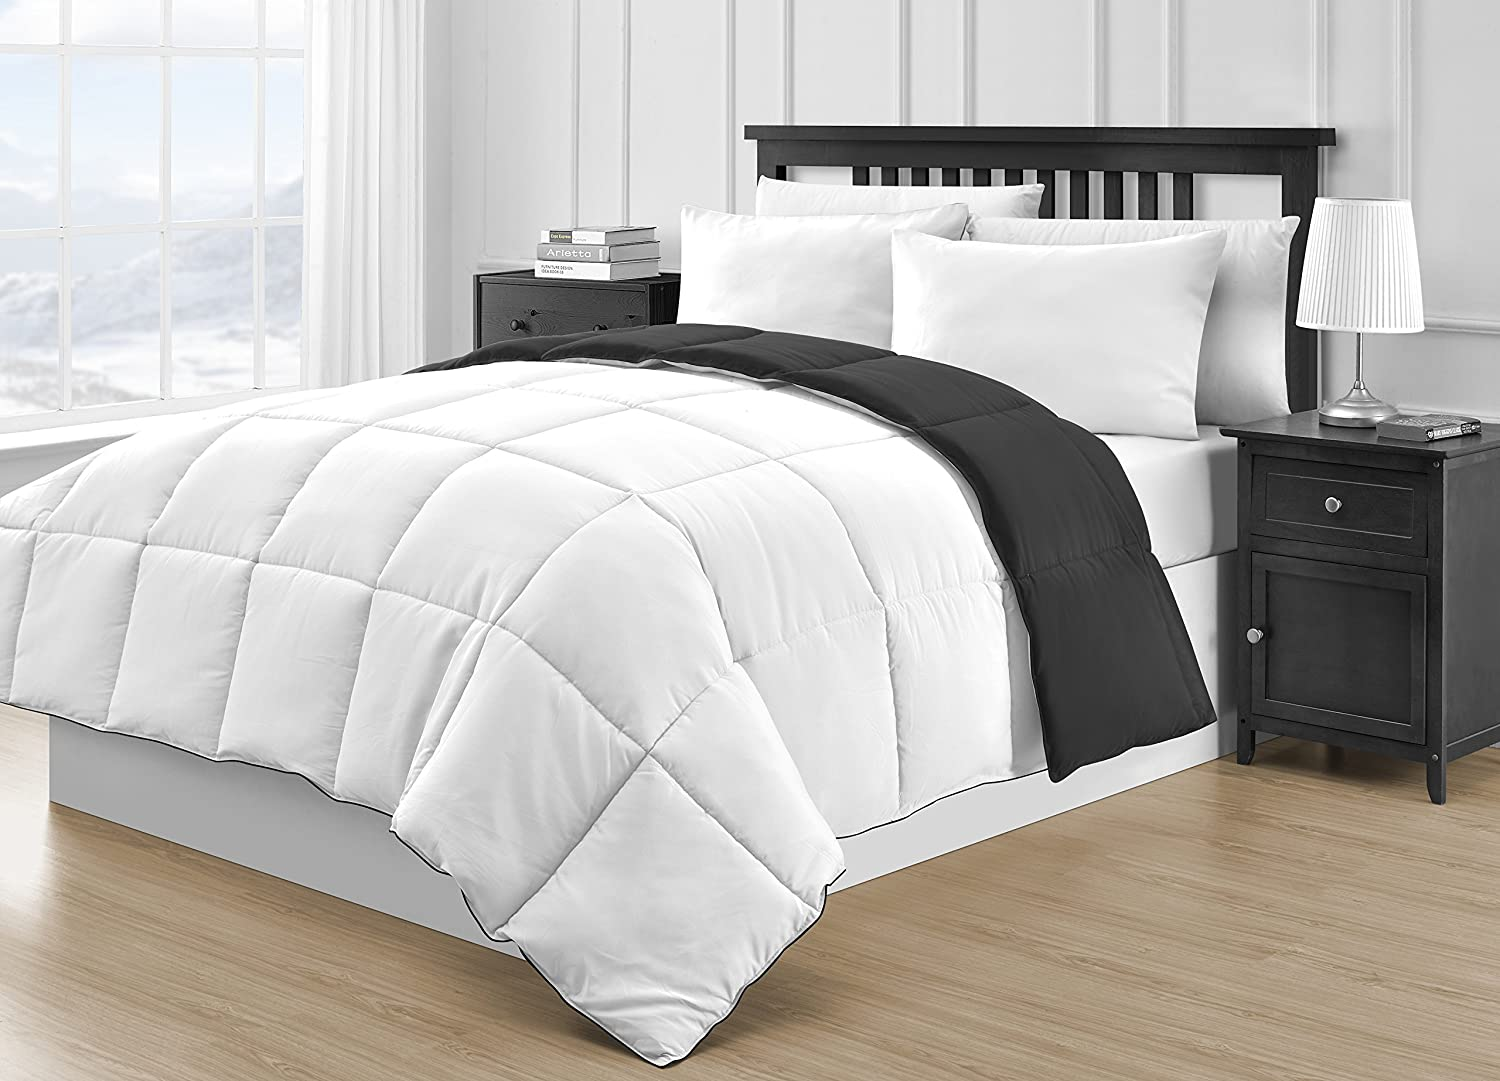 how to make a bed with a down comforter